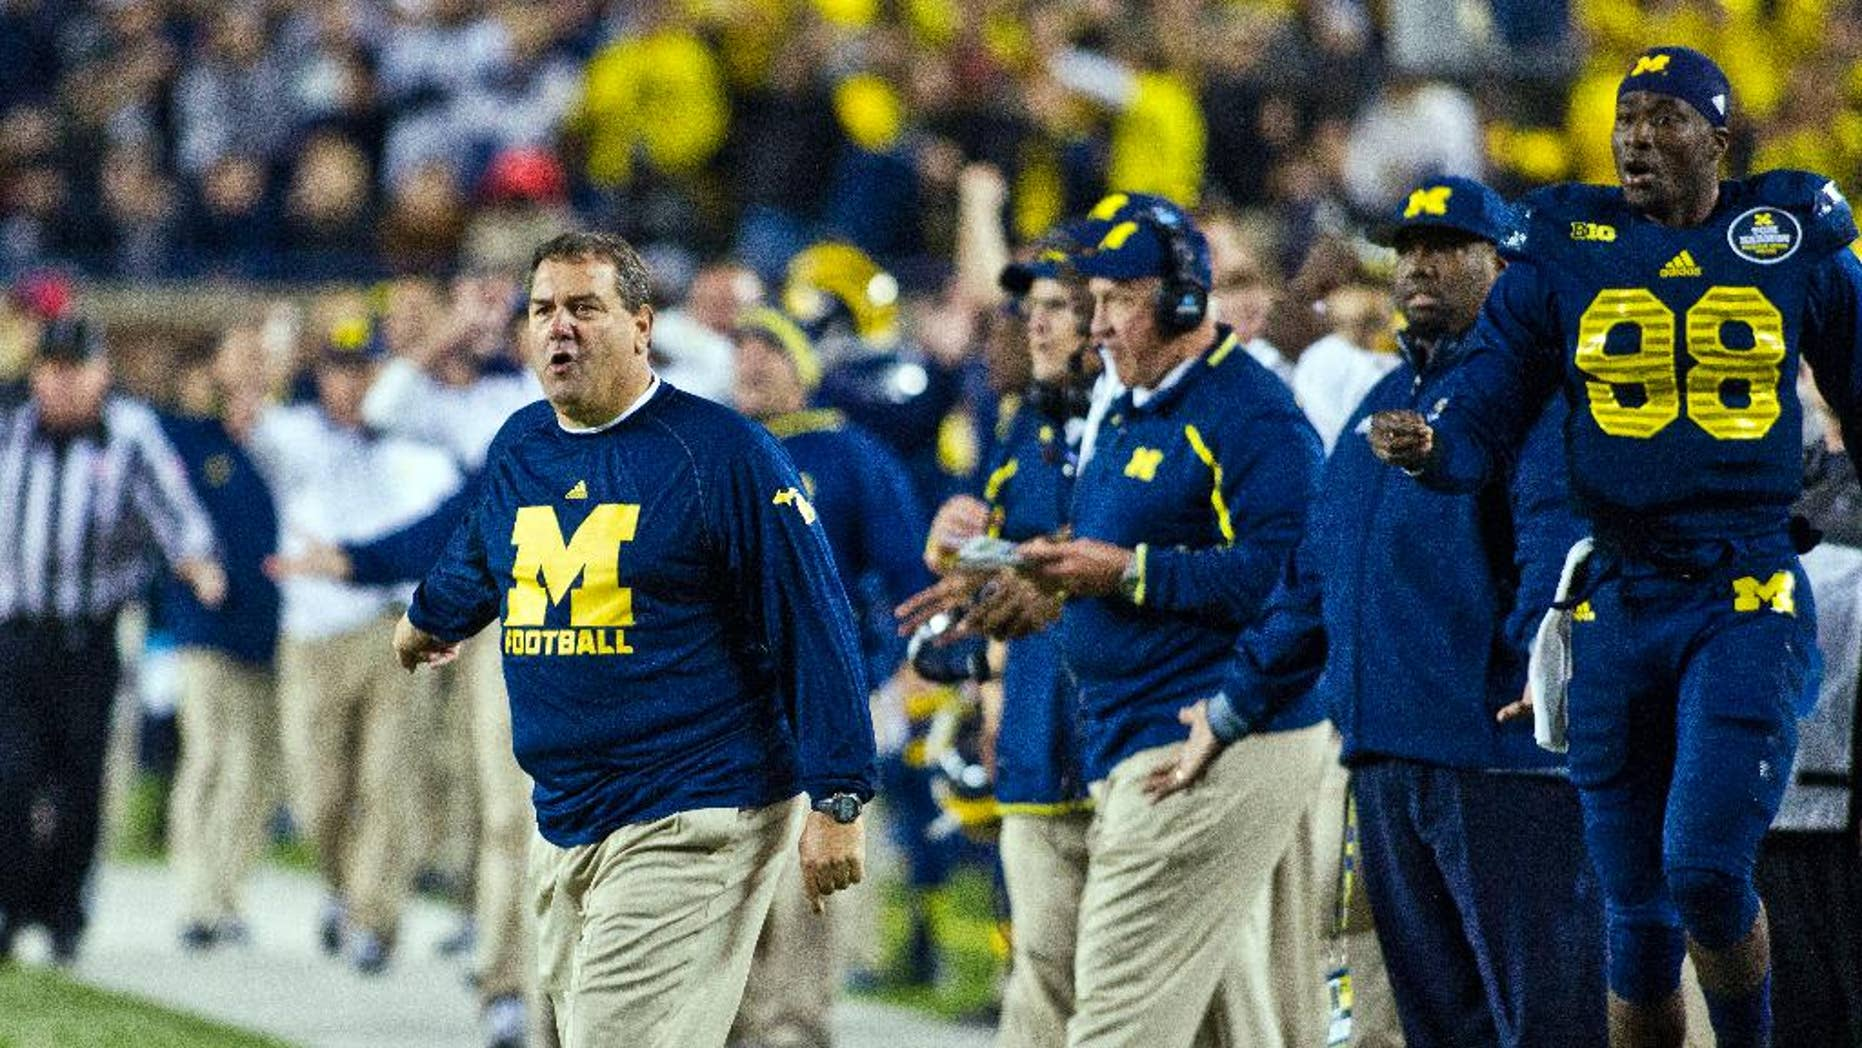 Michigan head coach Brady Hoke shouts and reacts on the sideline in the fourth quarter of an NCAA college football game against Penn State in Ann Arbor, Mich., Saturday, Oct. 11, 2014. Michigan won 18-13. (AP Photo/Tony Ding)